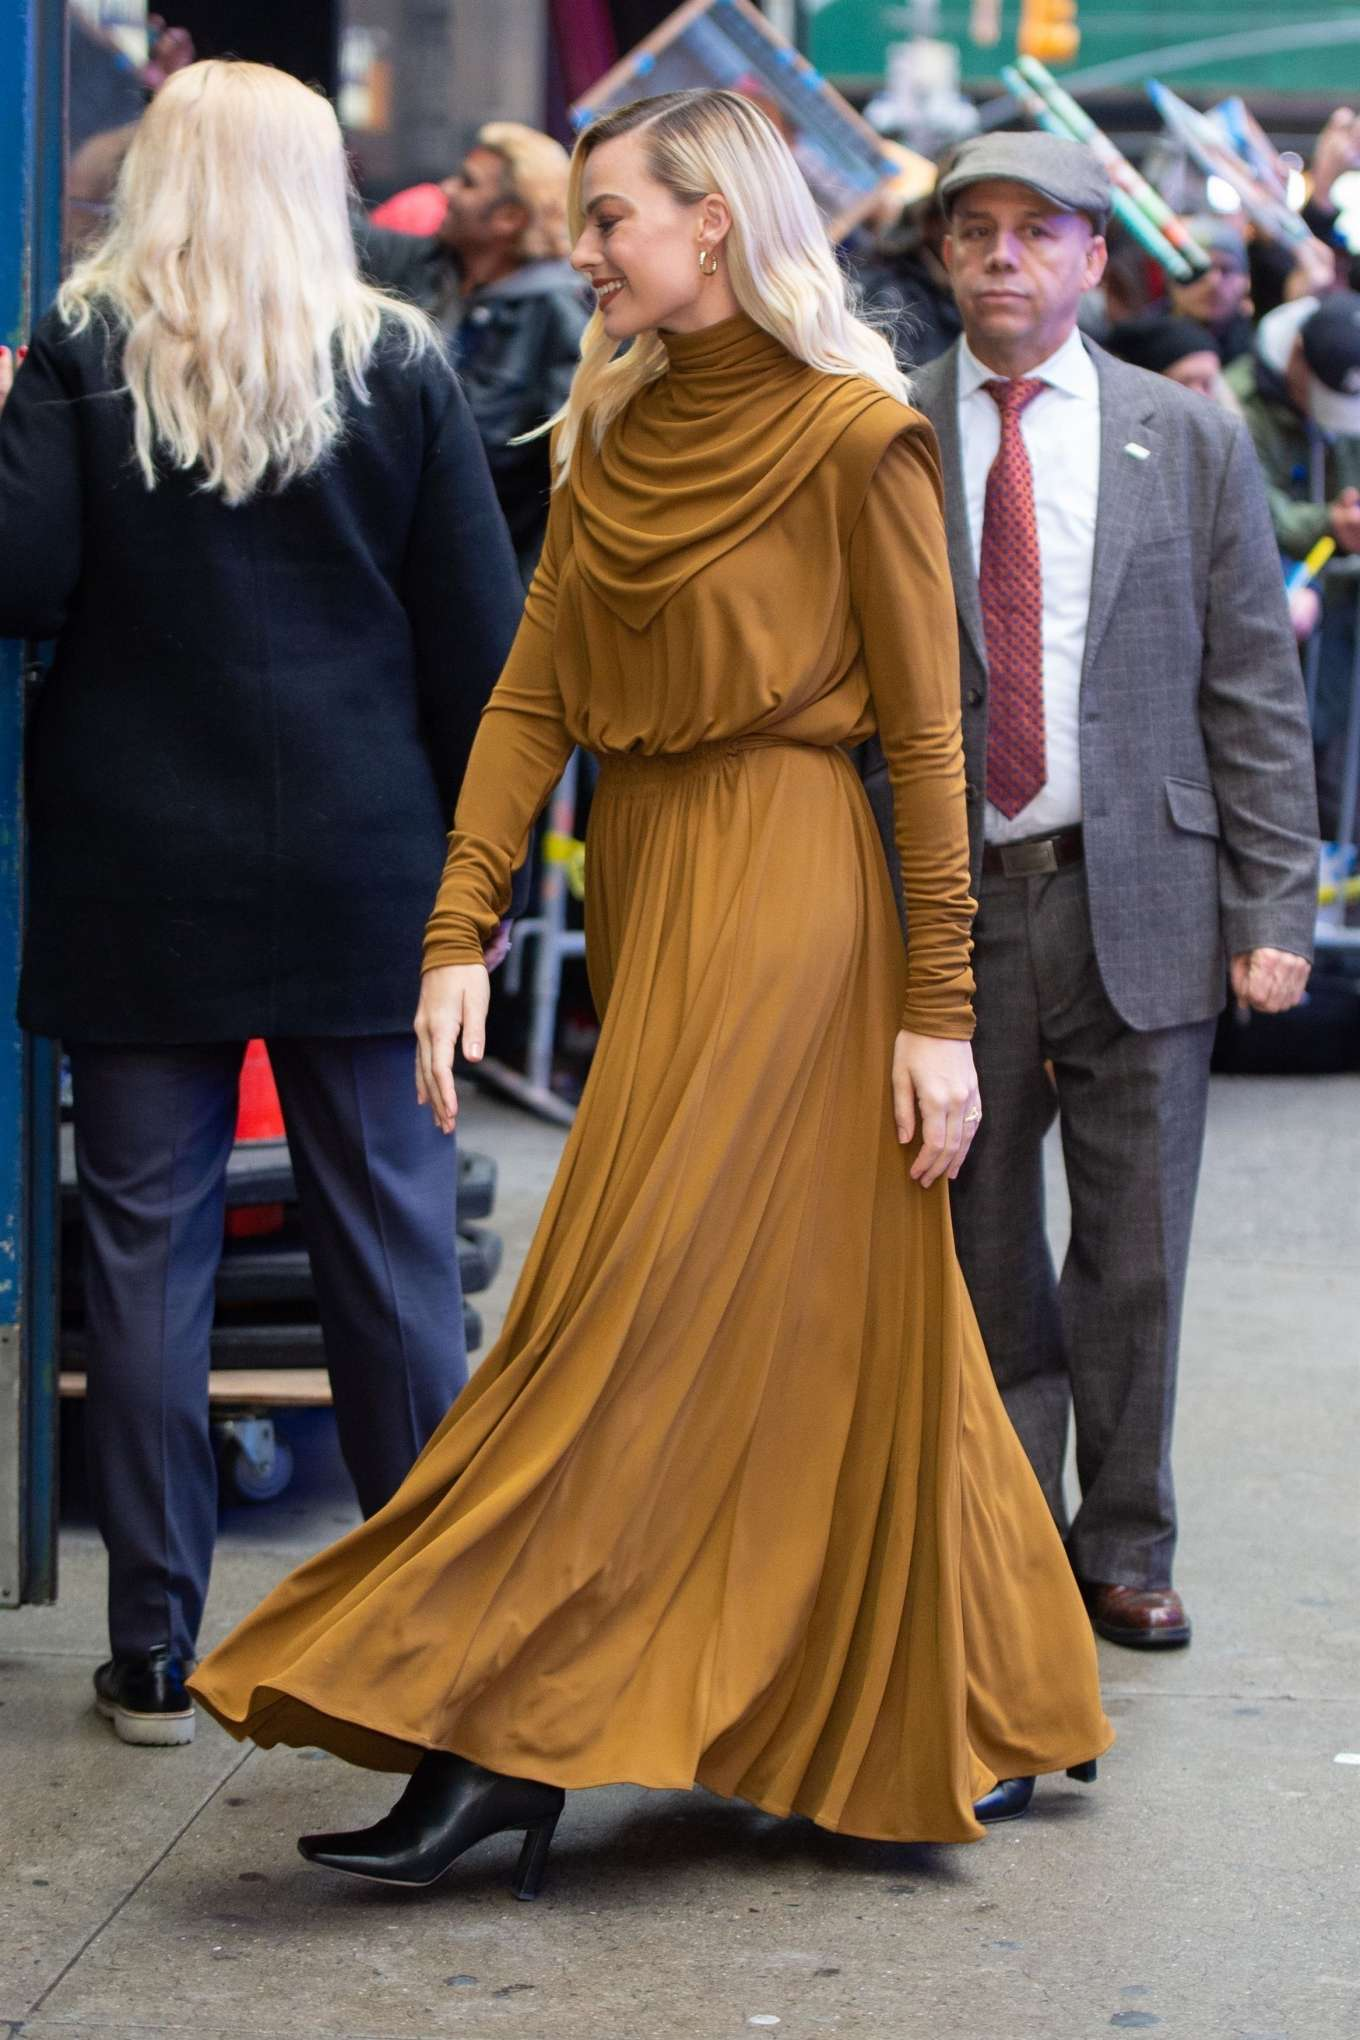 Margot Robbie - looks stunning as she greets fans in New York